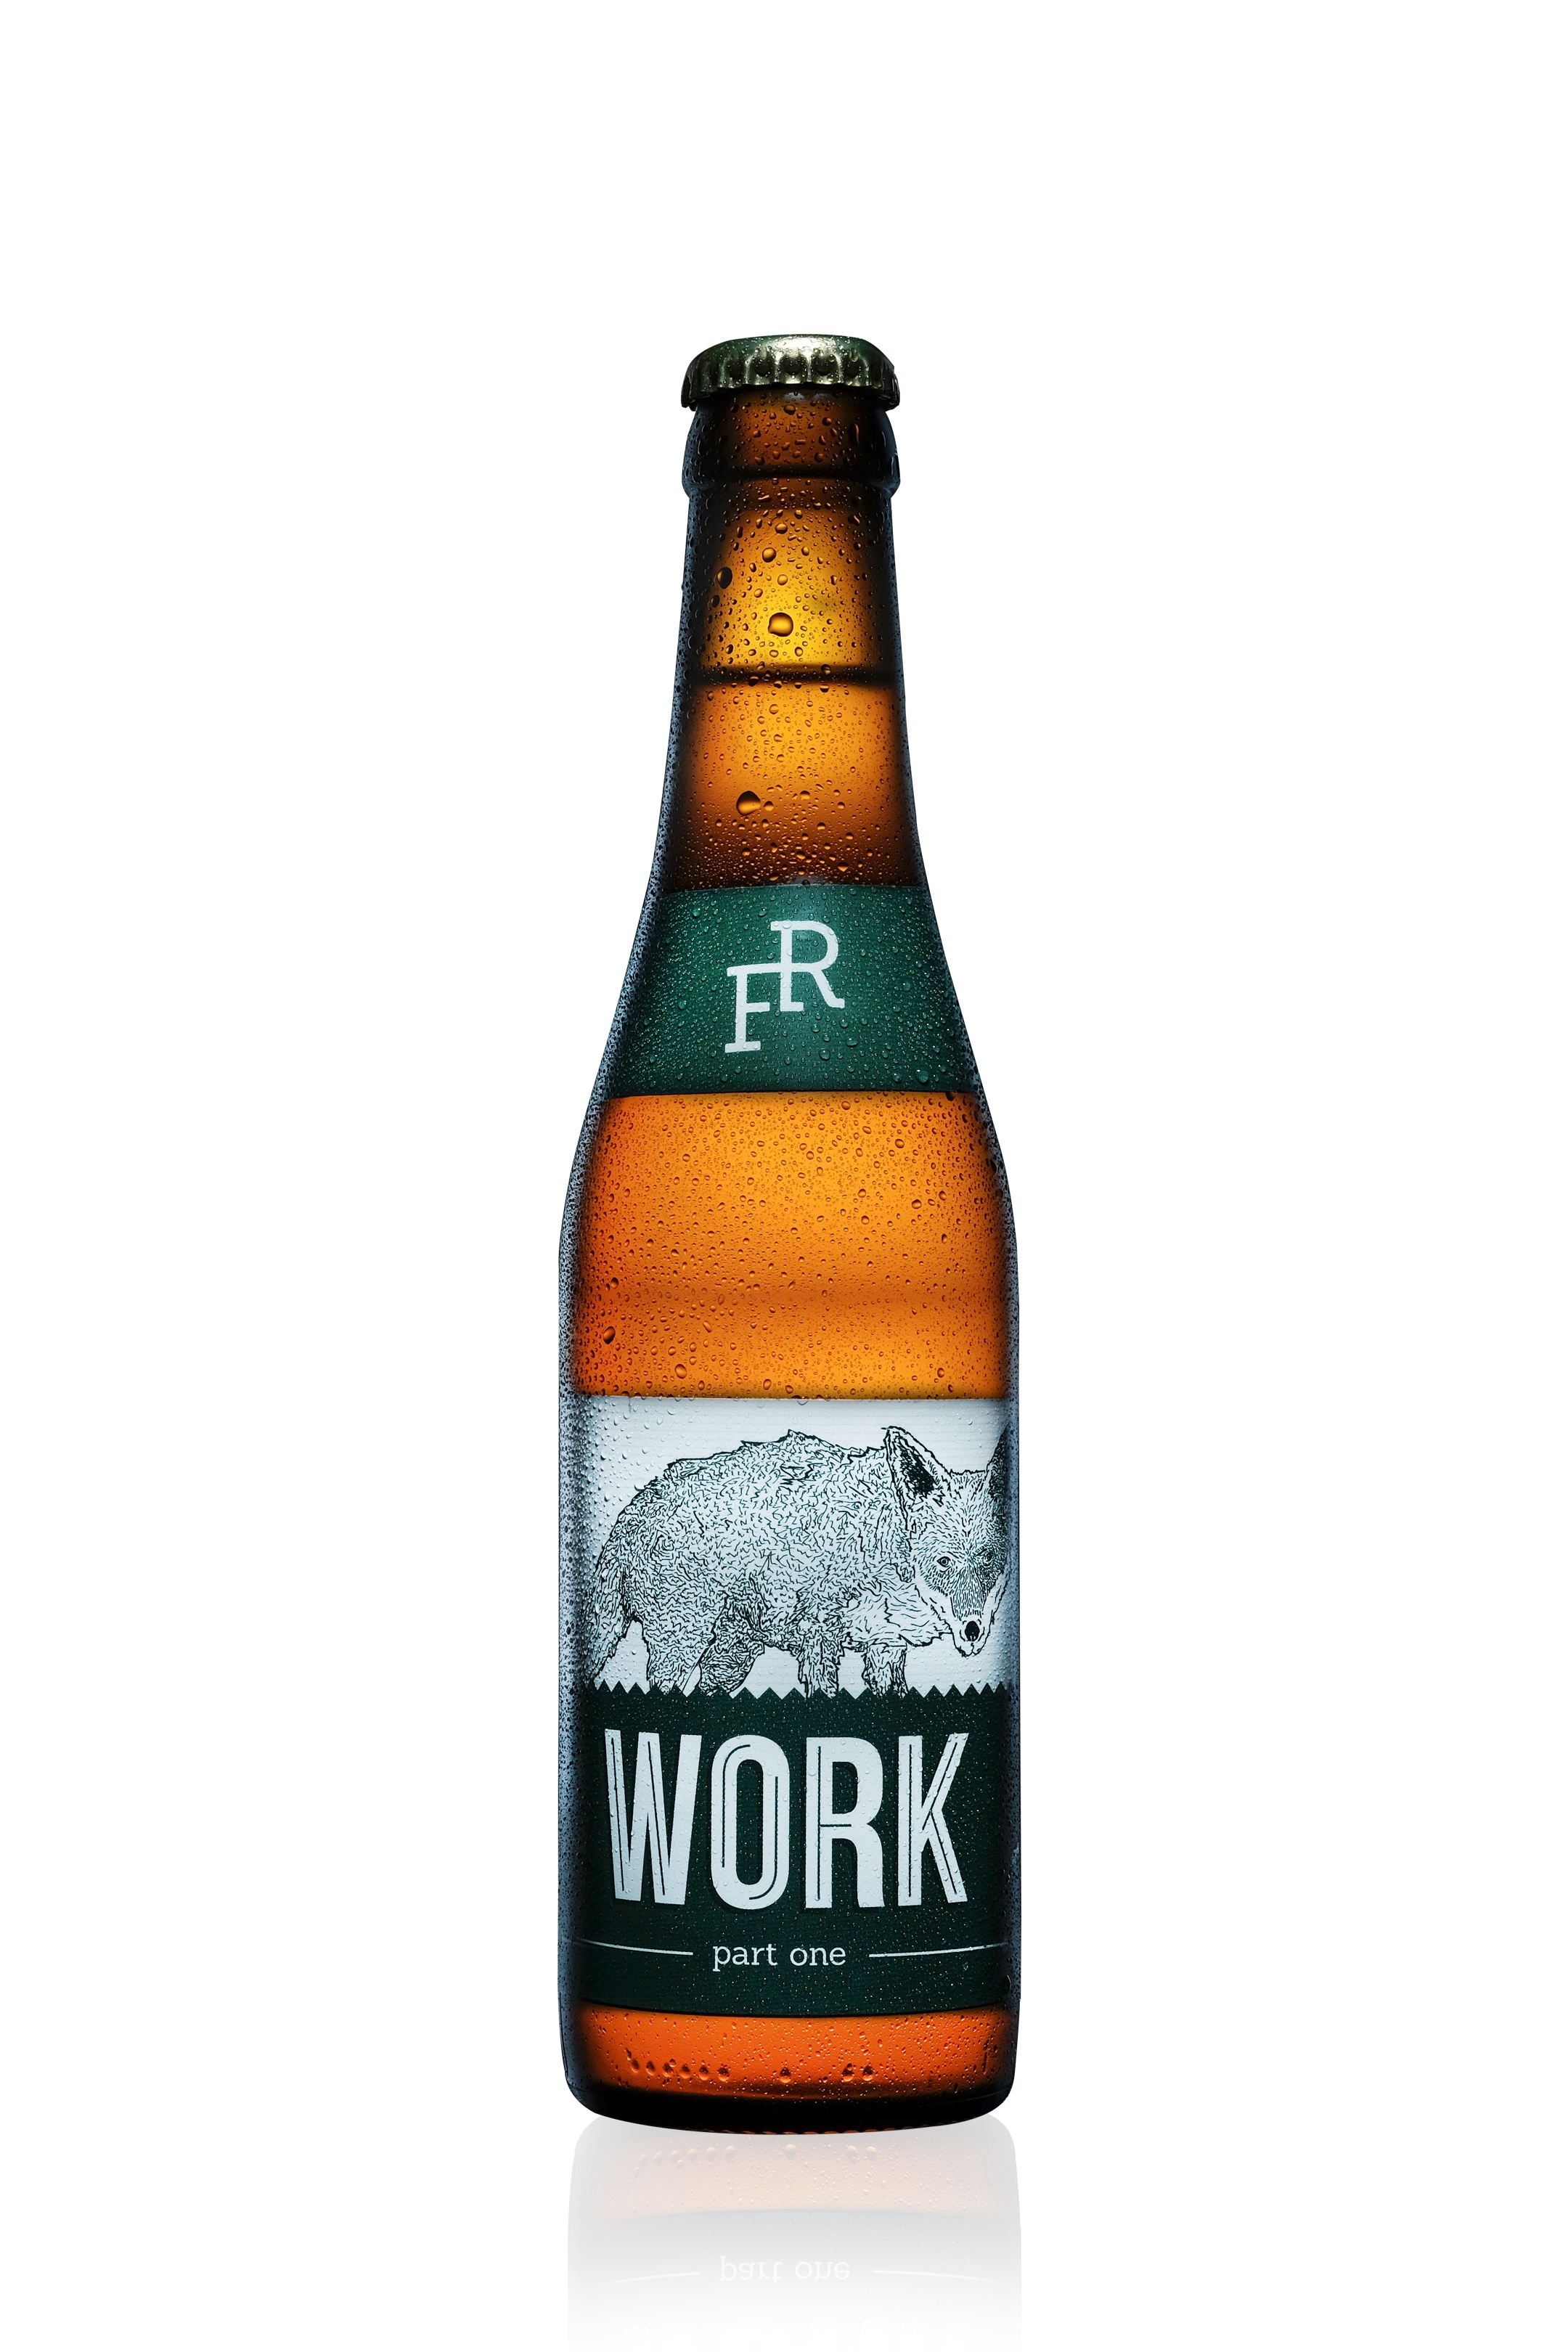 WORK  i.p.a., 5.4%, our flagship india pale ale, clean and complex. After 3 or 4 pints, the world becomes a better place.